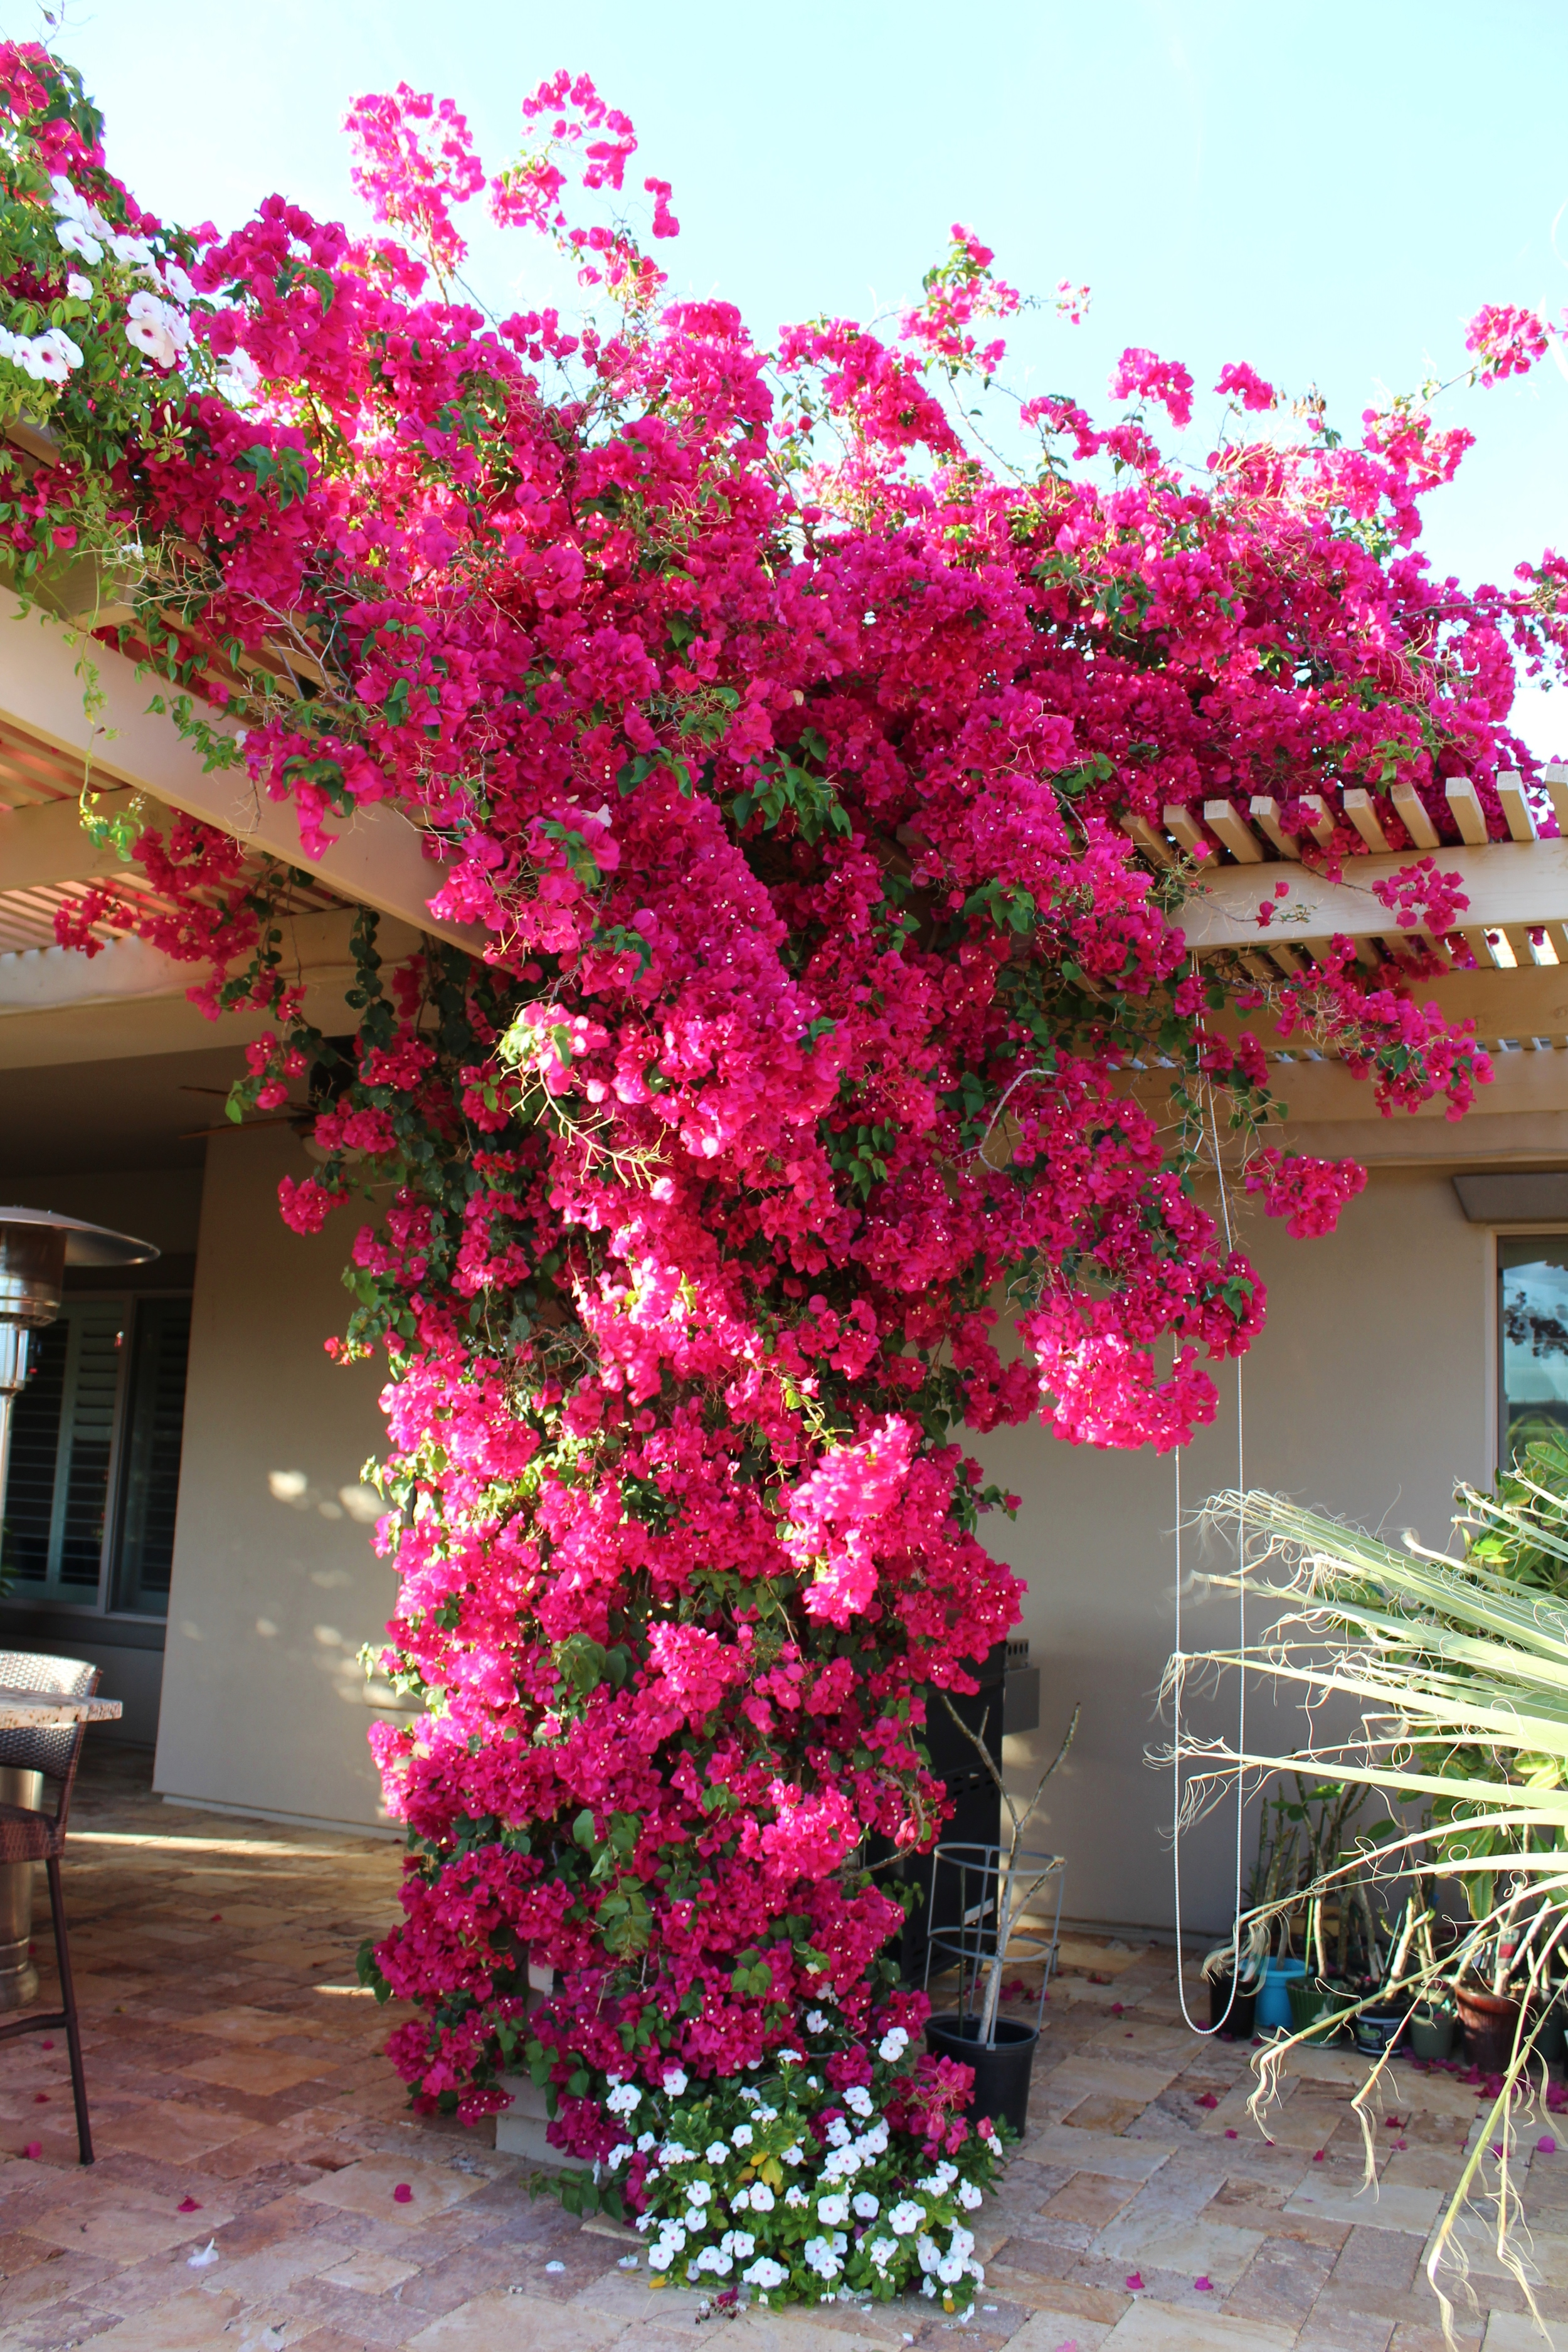 Growing bougainvillea in Phoenix